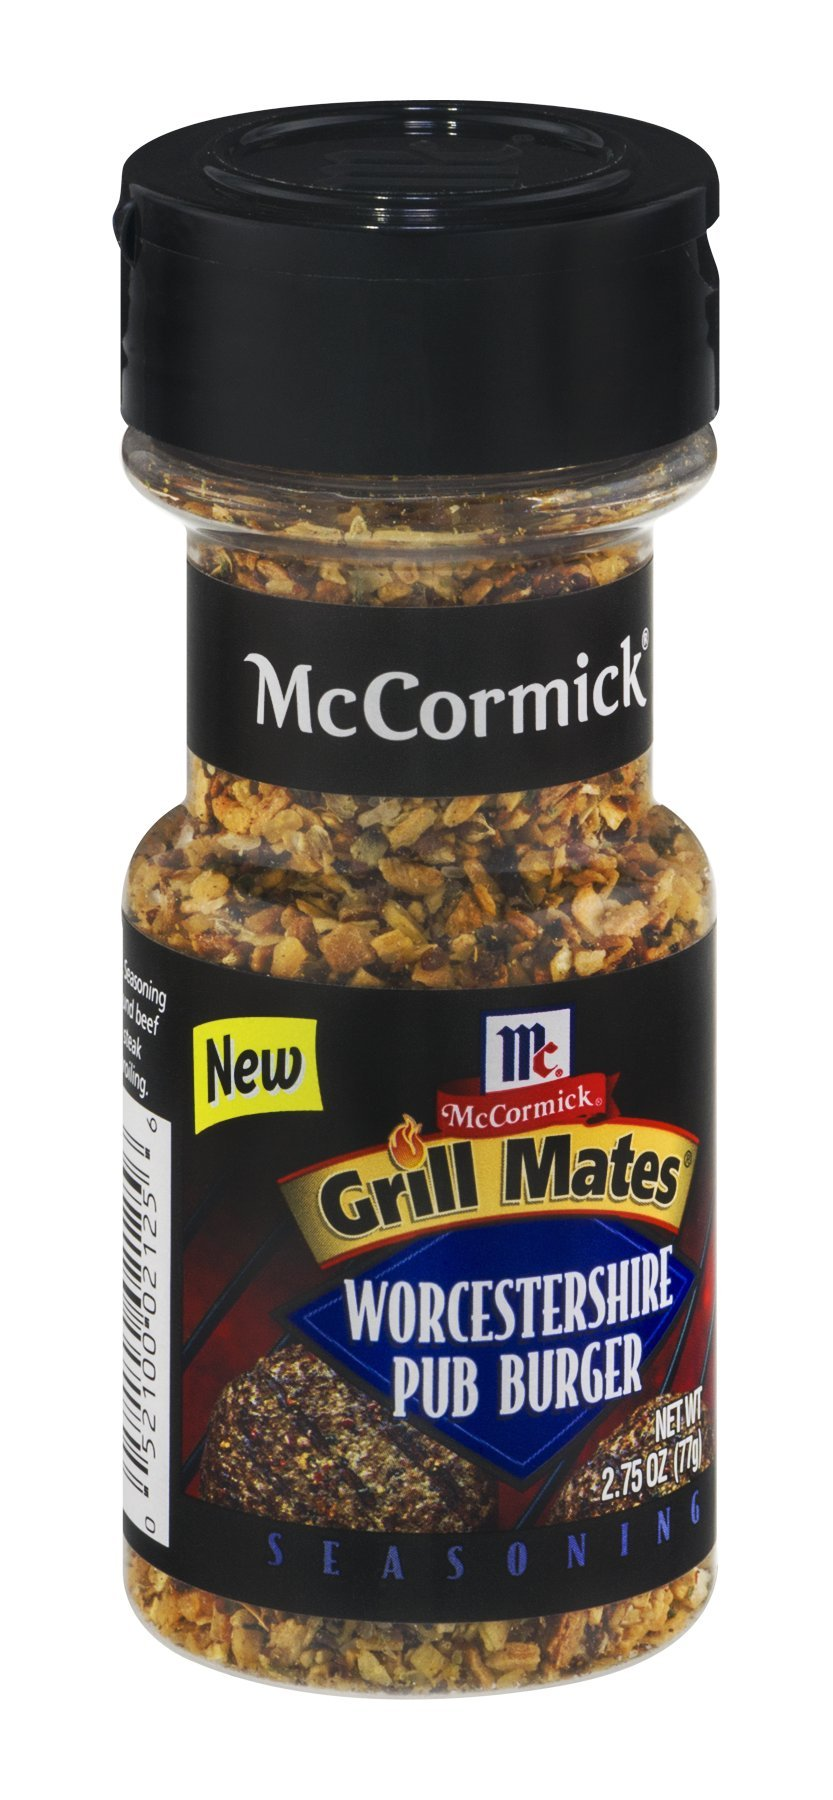 McCormick Grill Mates Worcestershire Pub Burger Seasoning, 2.75 OZ (Pack - 18)